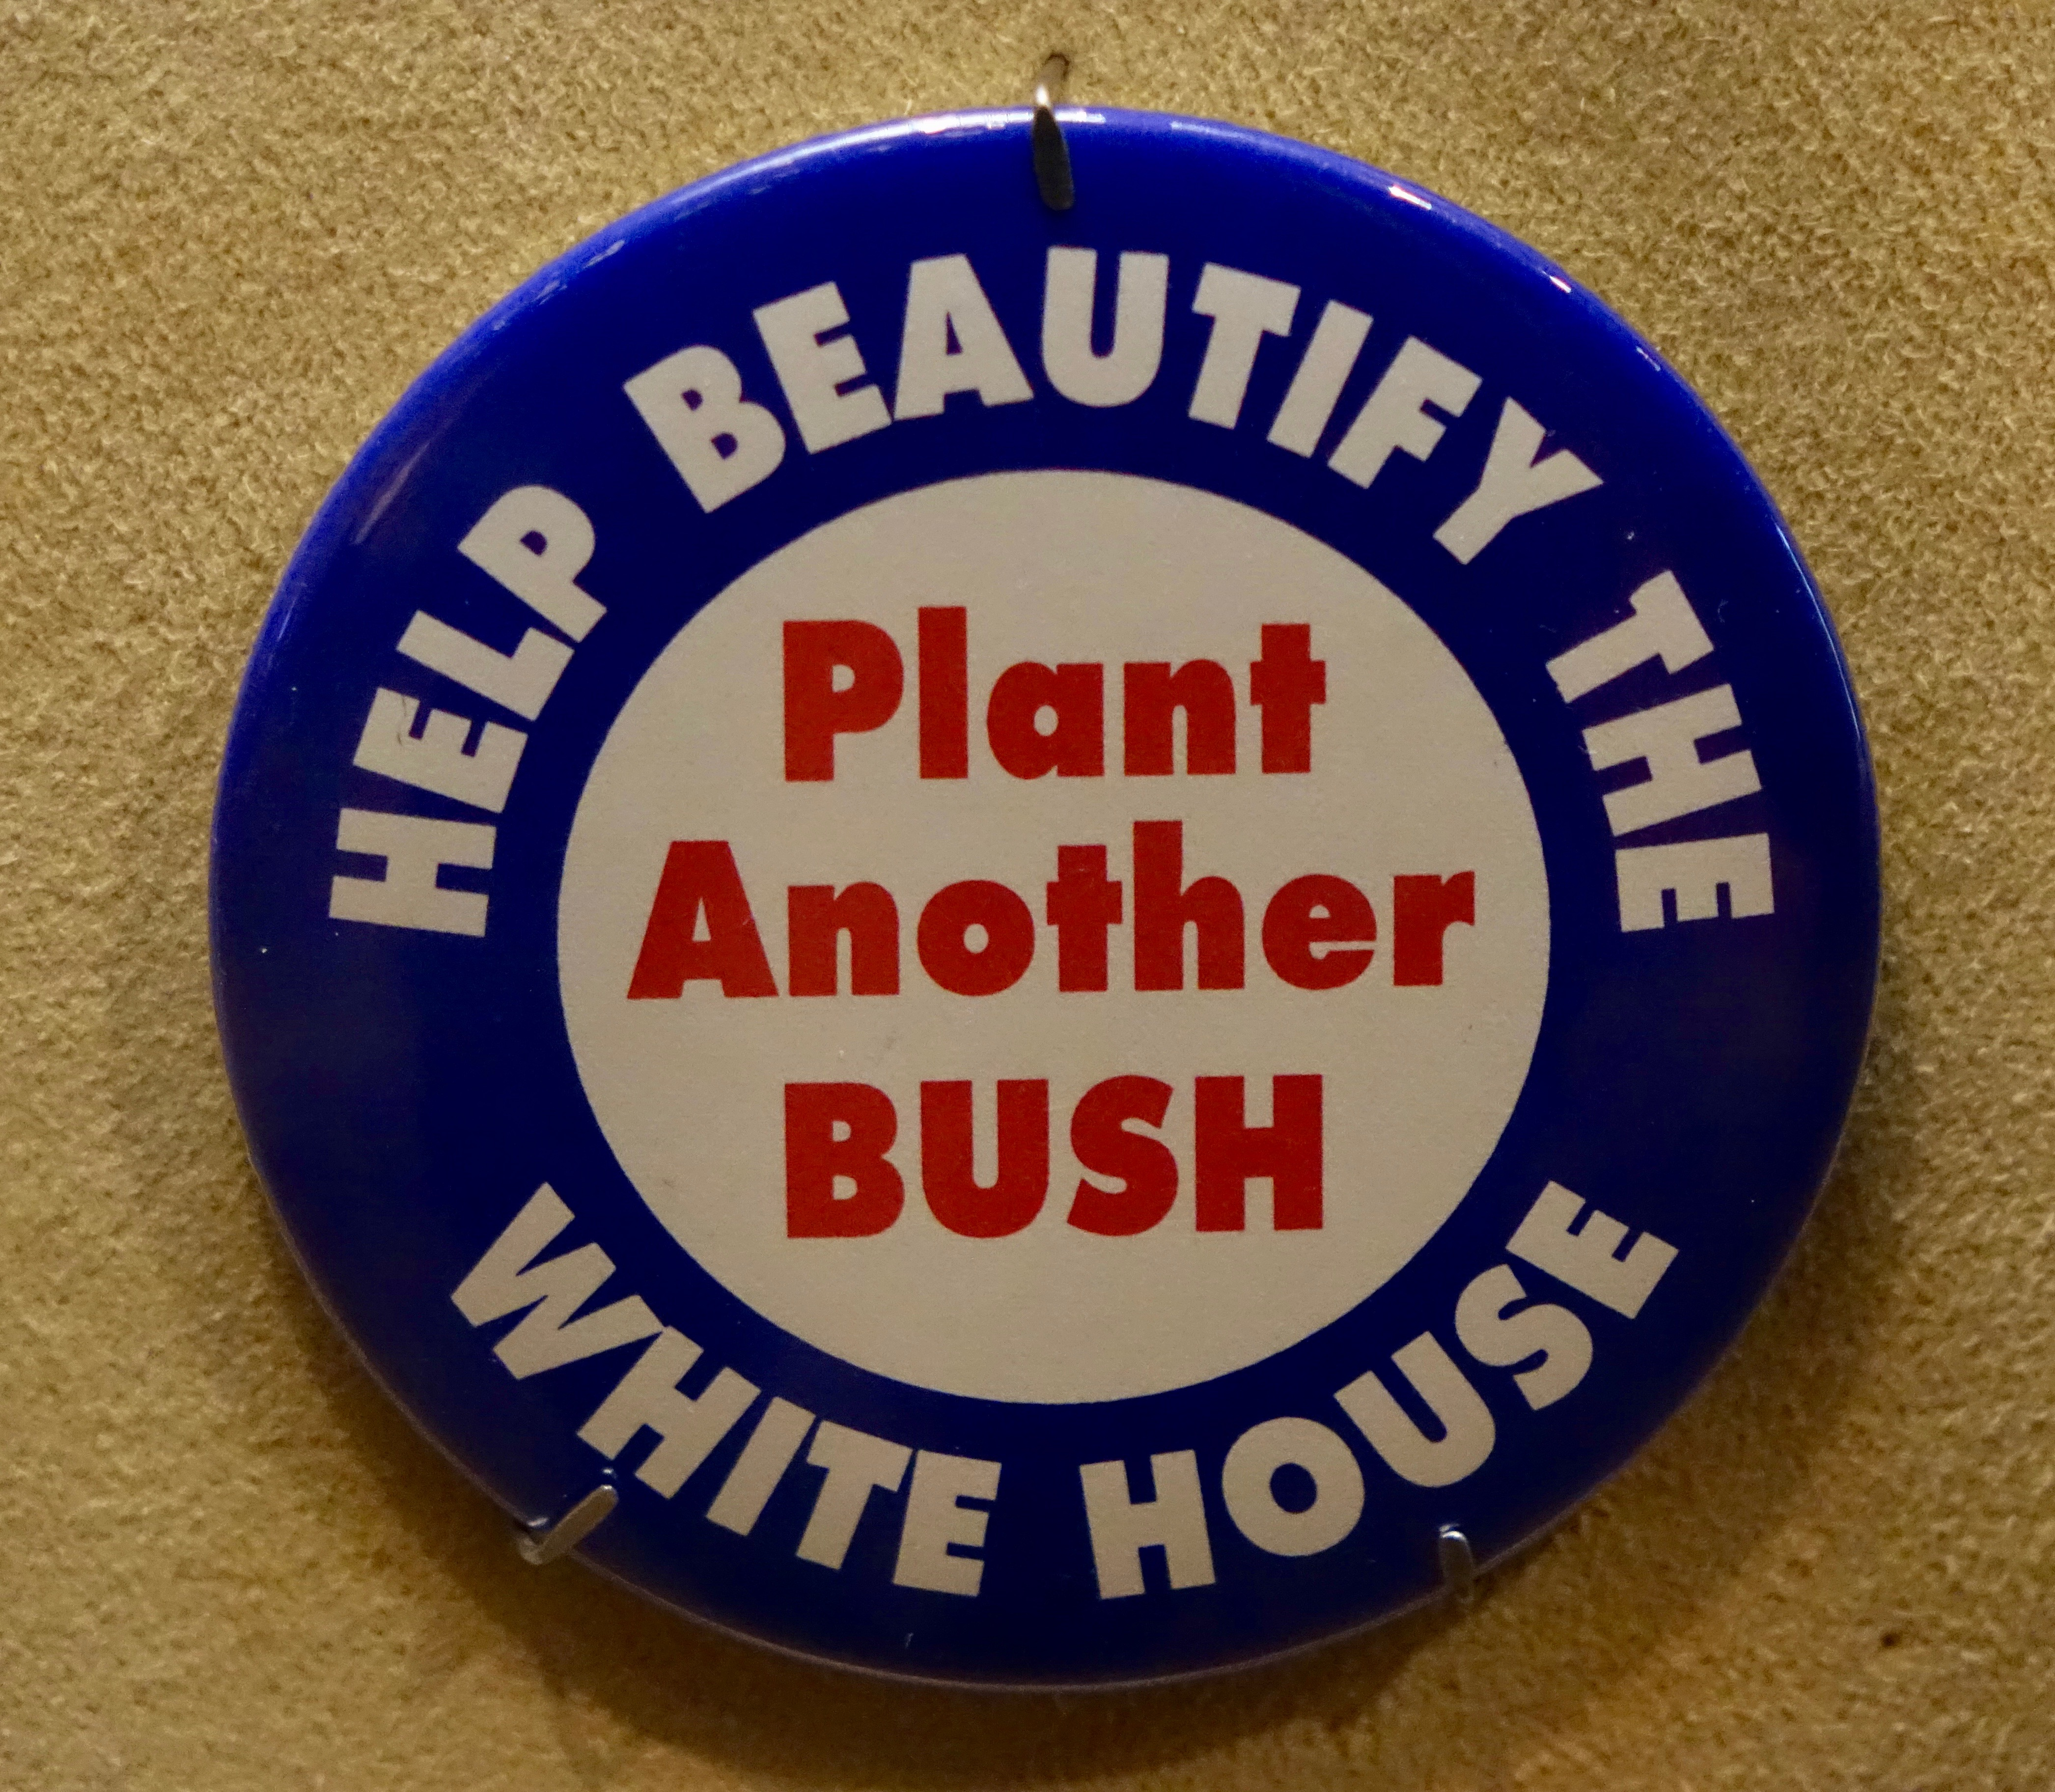 Gee, they could have recycled these for Jeb!